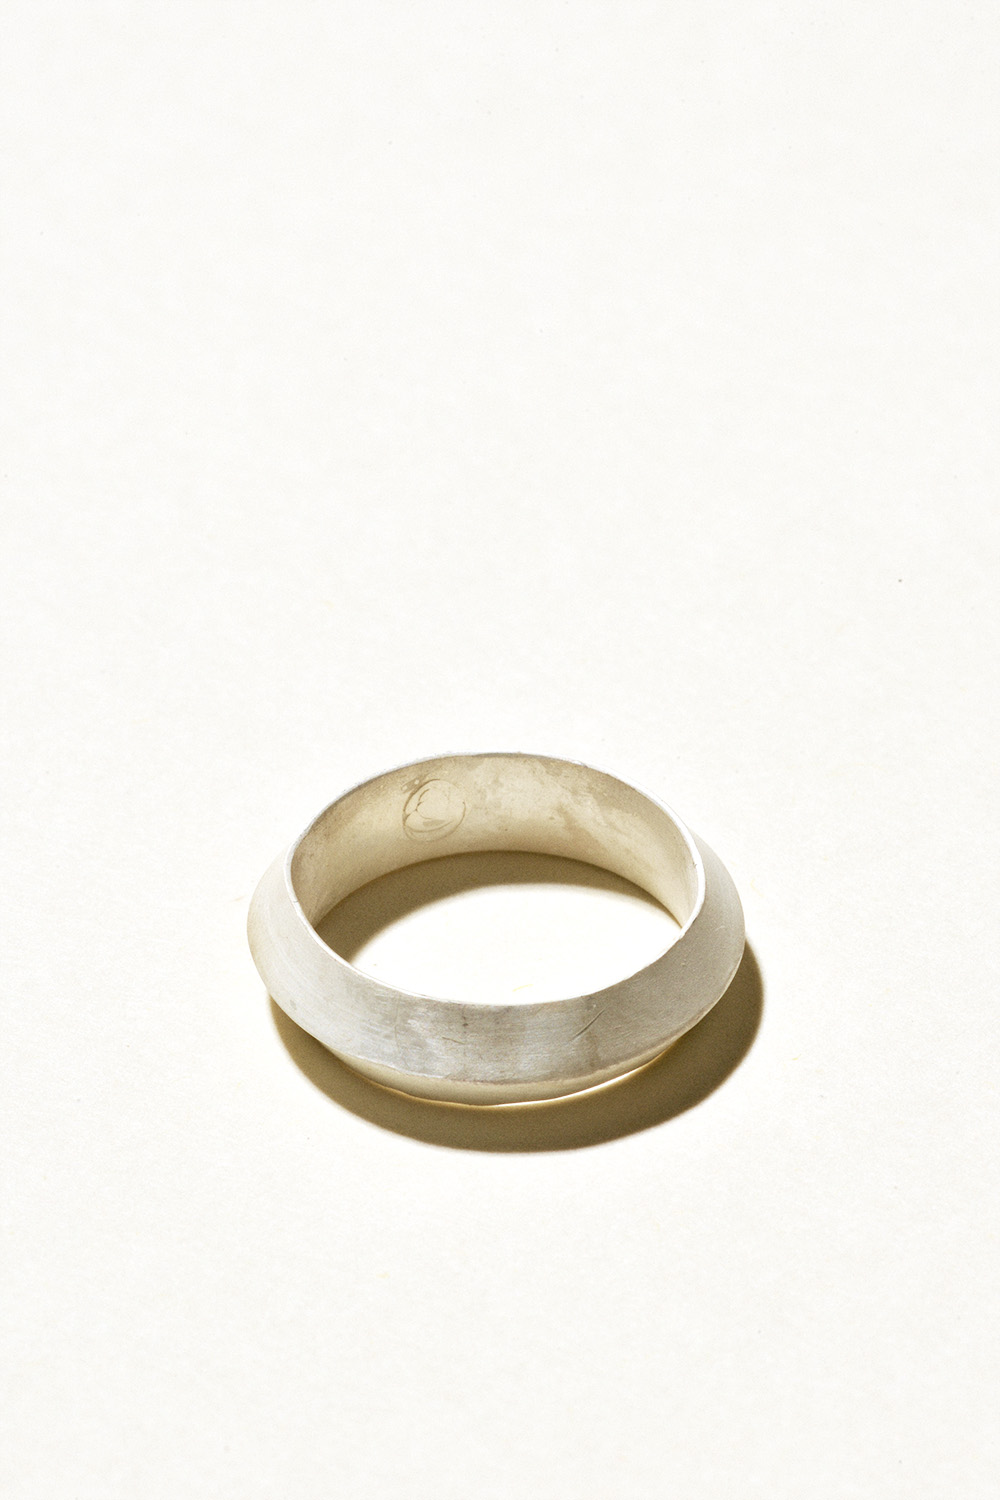 Prism Ring - 5mm wideSterling Silver, Raw FinishHand Smithed $100